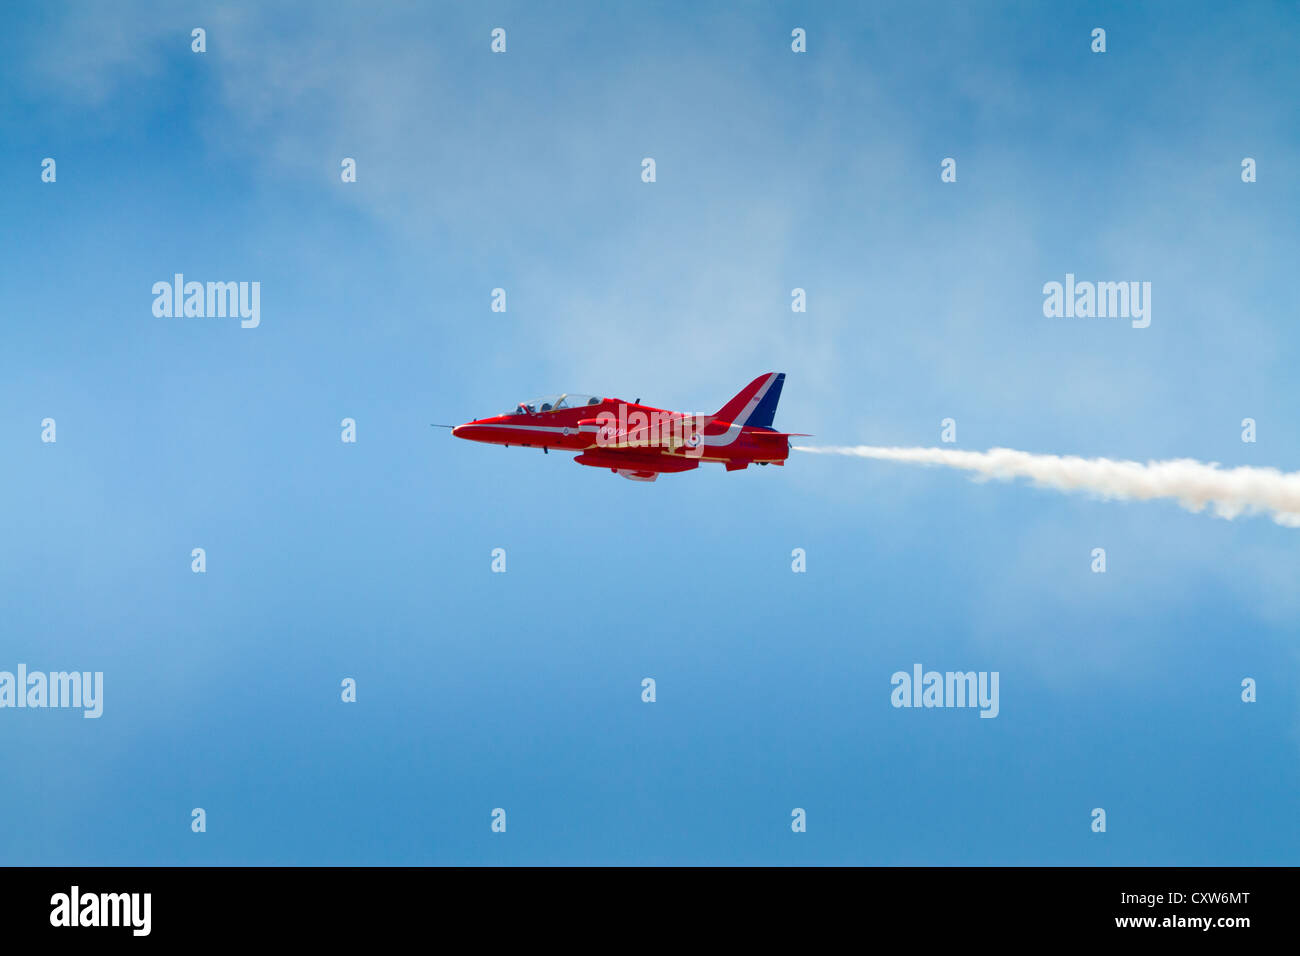 Red Arrows plane with smoke against blue sky, WESTON-SUPER-MARE, SOMERSET-JULY 23RD 2012: Stock Photo